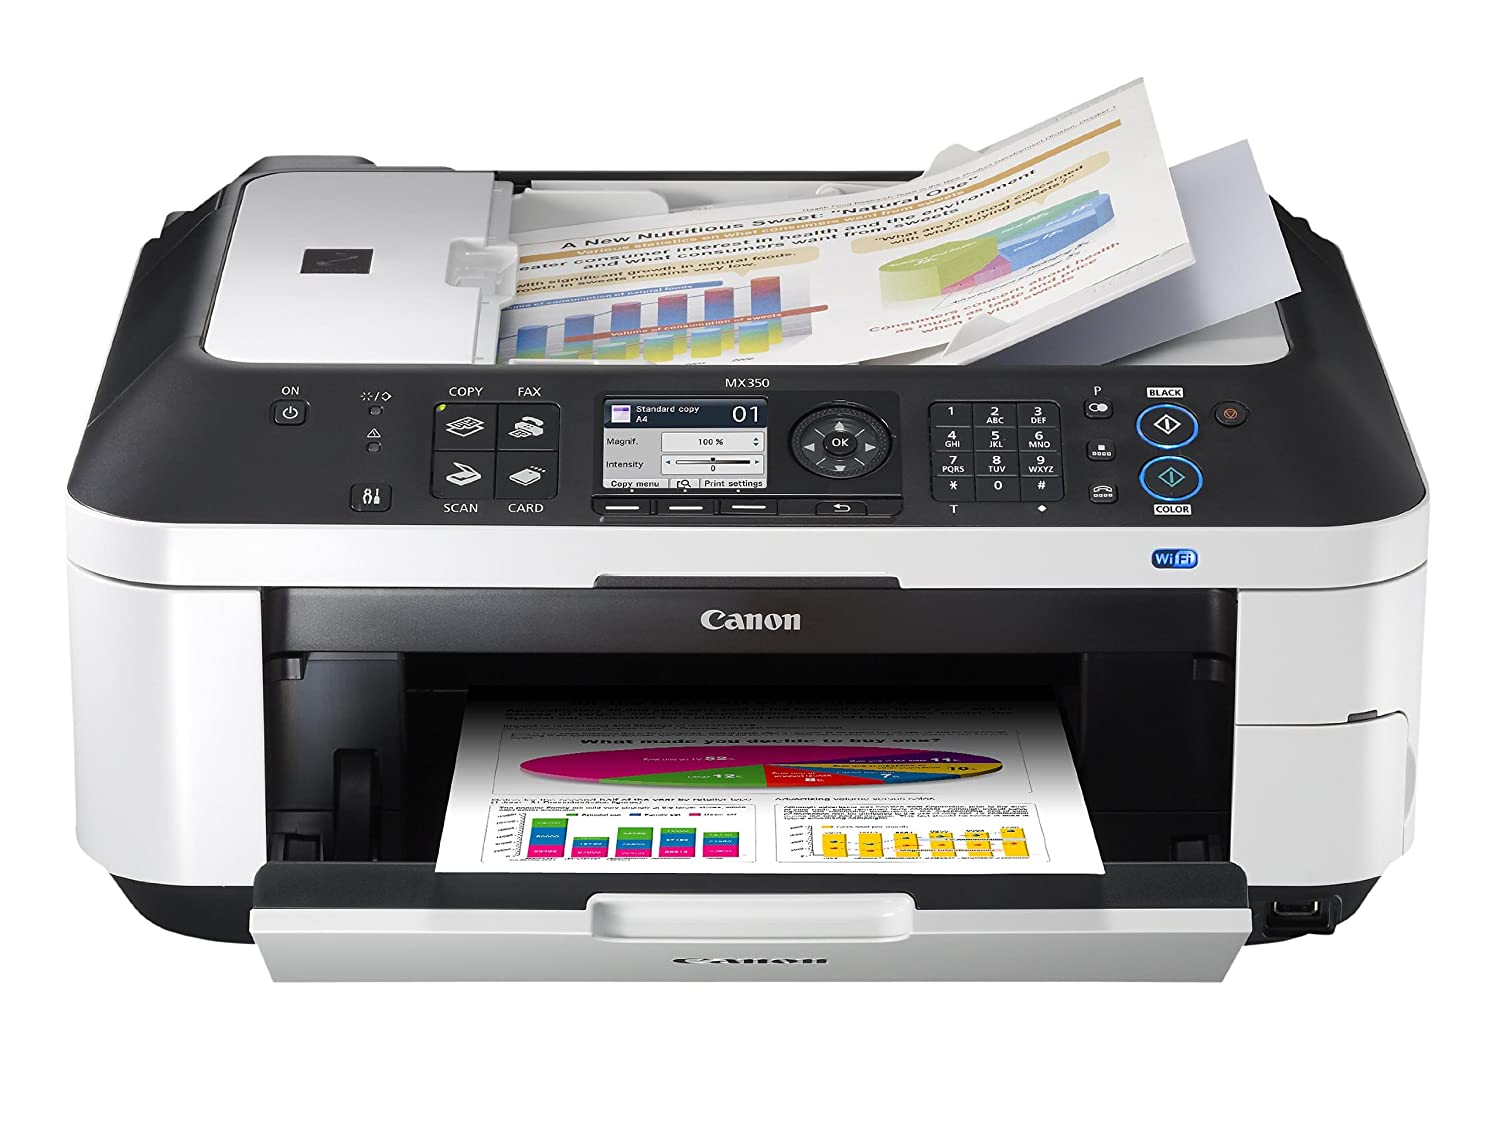 CANON PIXMA MX350 MP PRINTER WINDOWS 7 64-BIT